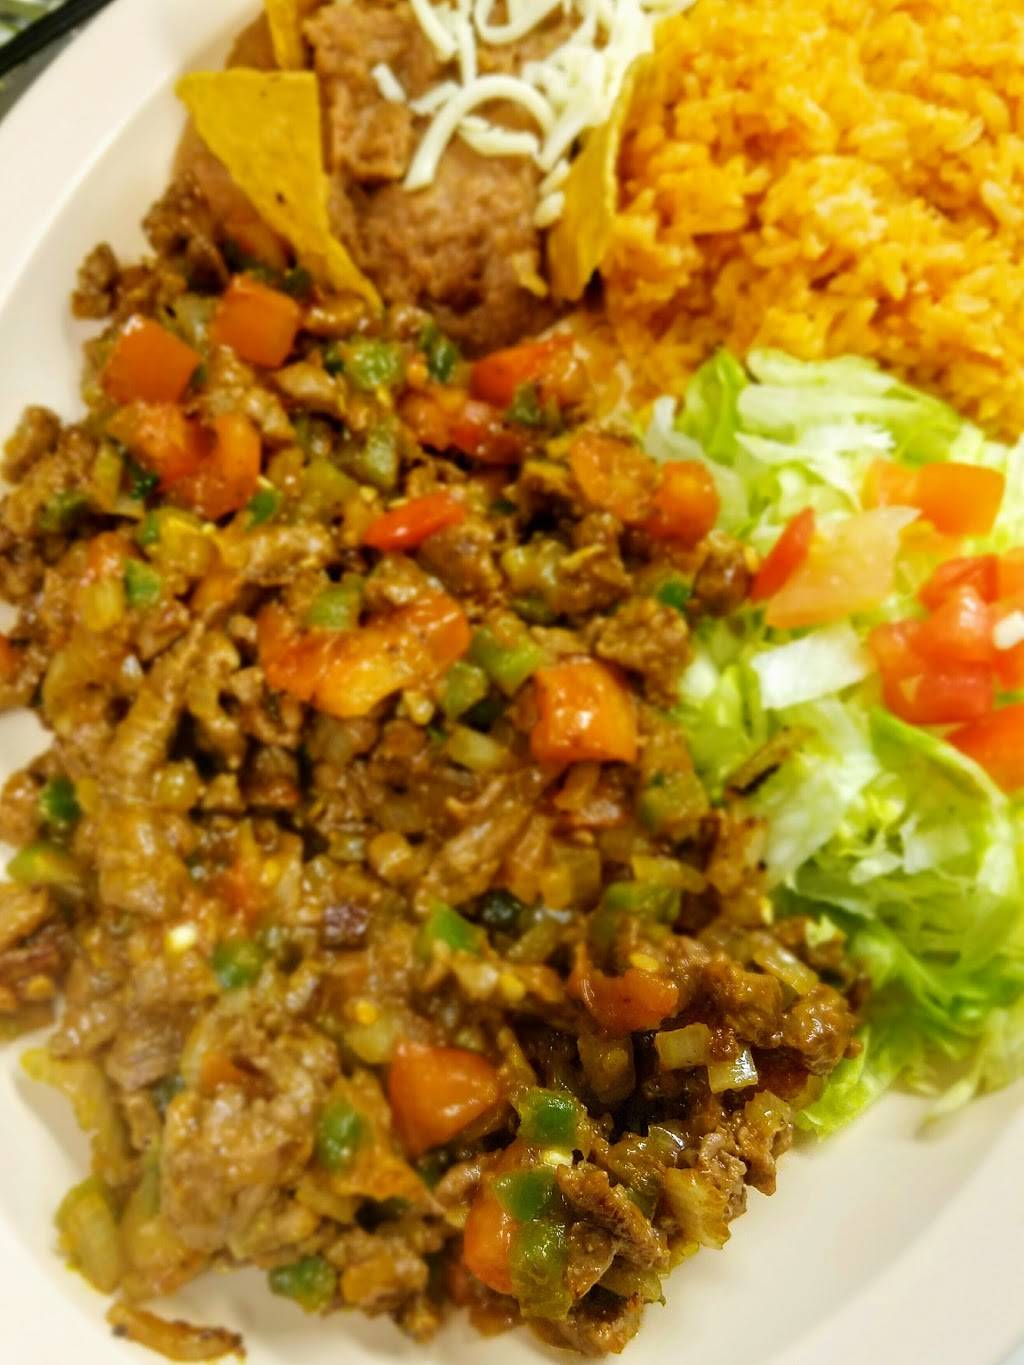 Taco Express   restaurant   1127 Fairview Ave, Westmont, IL 60559, USA   6309710808 OR +1 630-971-0808